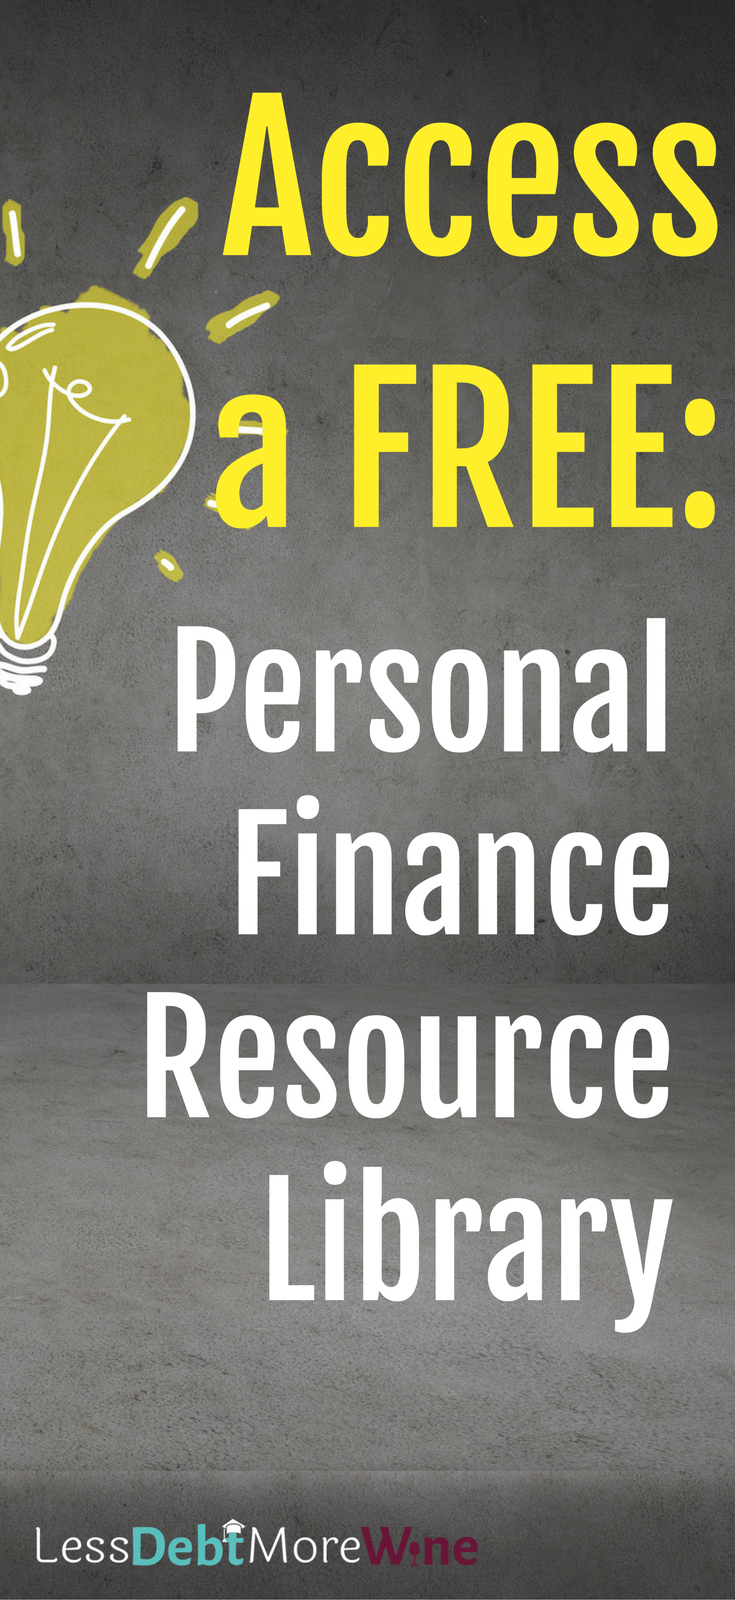 personal finance tips | millennial money tips | money management | budgeting printable